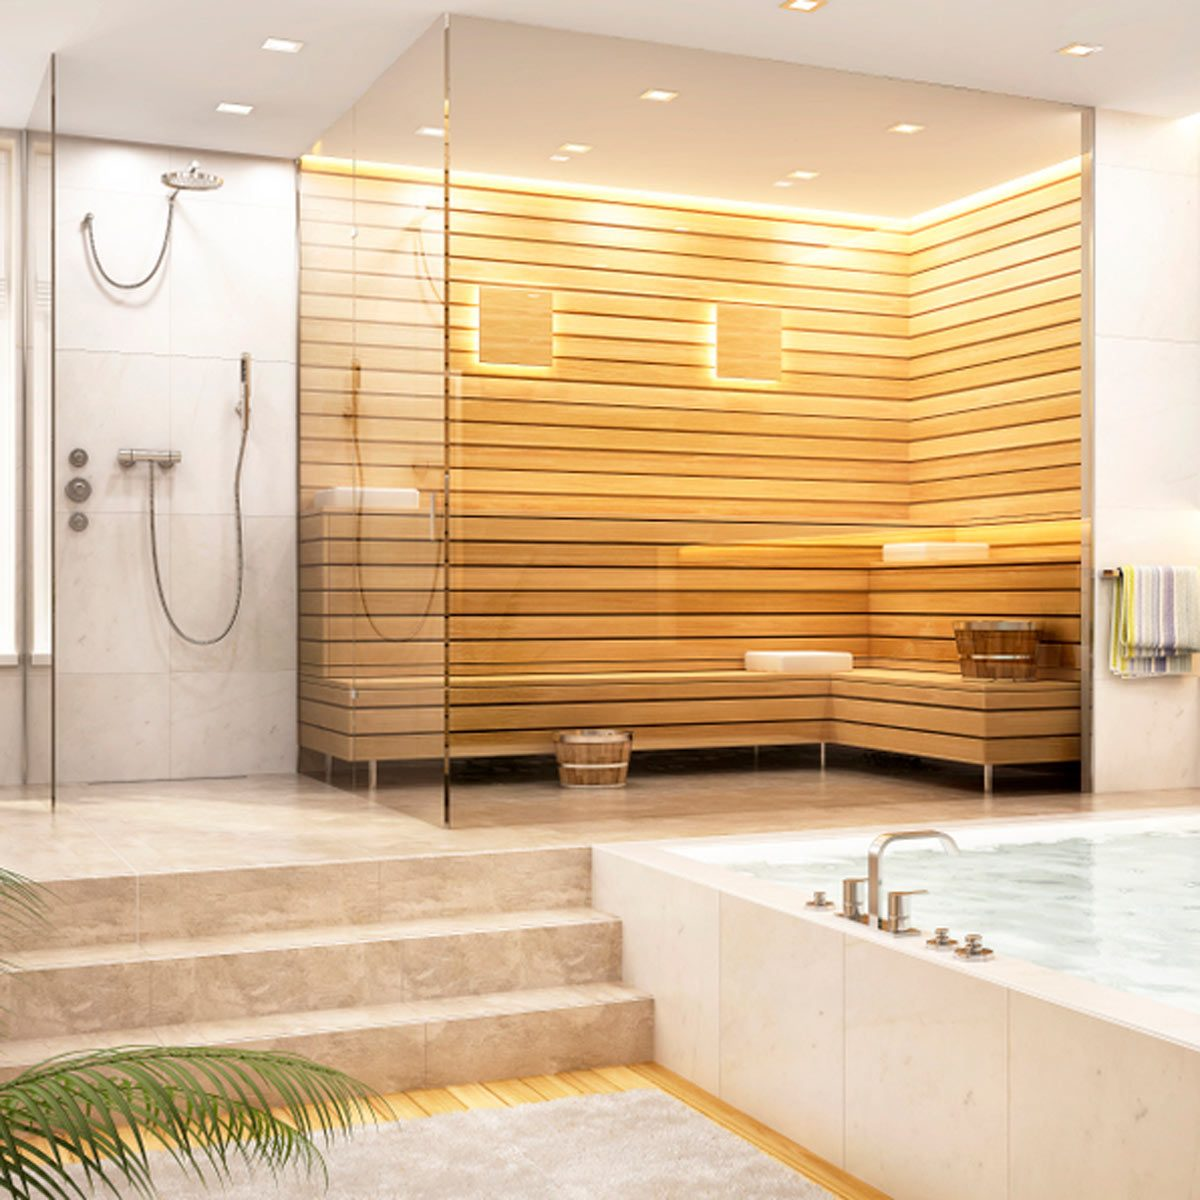 15 Incredible Steam Shower Ideas | Family Handyman